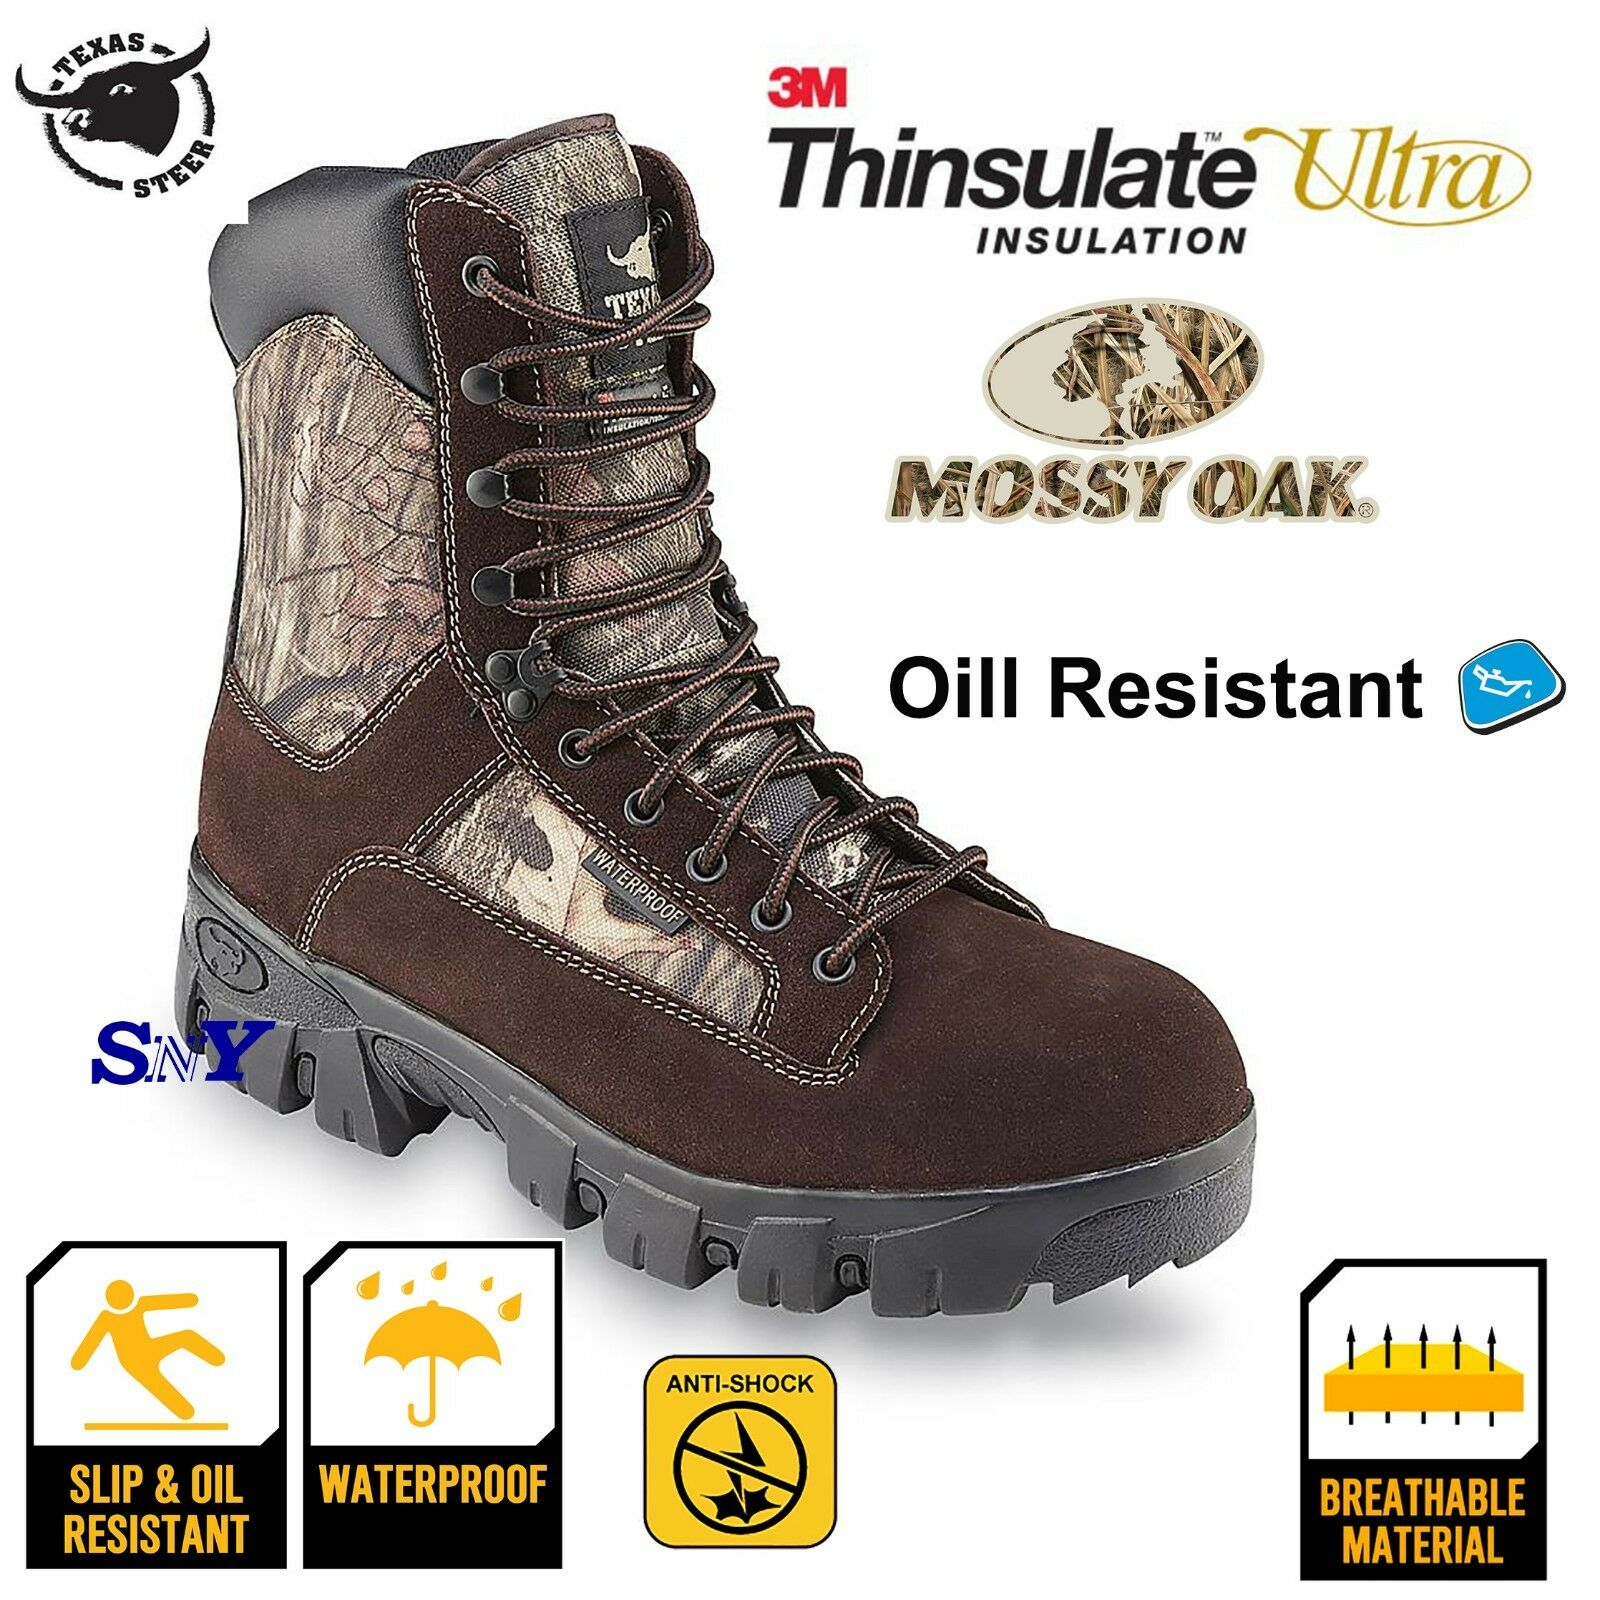 Waterproof fishing hunting work boots insulated boot cushioned slip resistant ts